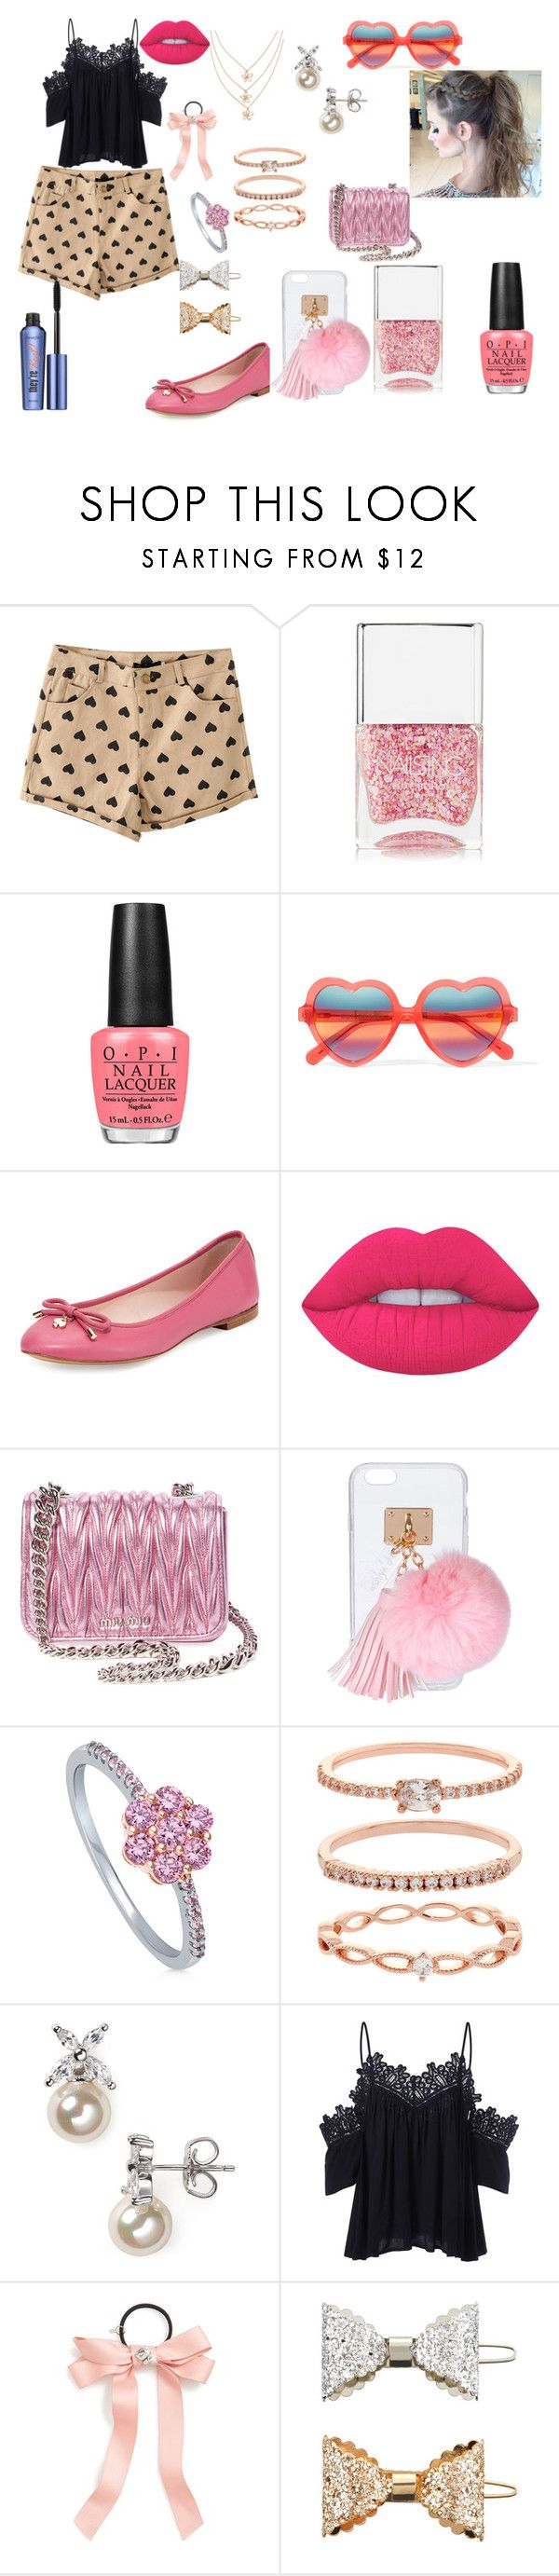 """""""Sem título #81"""" by sarah-hellen-meireles-oliveira on Polyvore featuring moda, Nails Inc., OPI, Cutler and Gross, Kate Spade, Lime Crime, Miu Miu, Ashlyn'd, BERRICLE e Accessorize"""